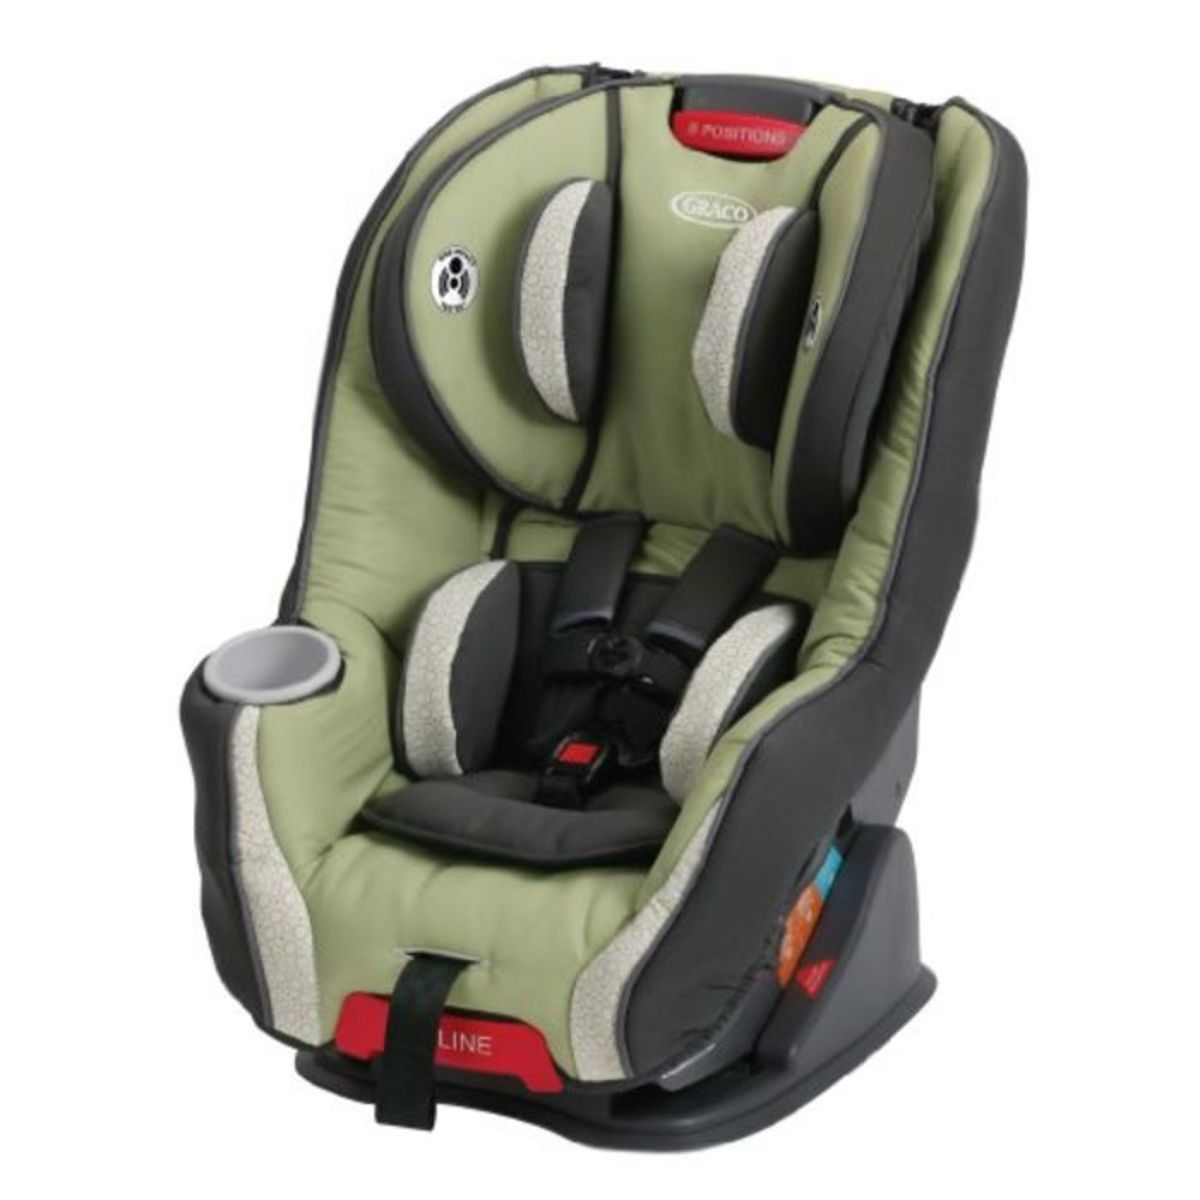 Car Seat Stroller Combo That Grows With Baby Best Car Seat Cushions Risers Booster For Short People